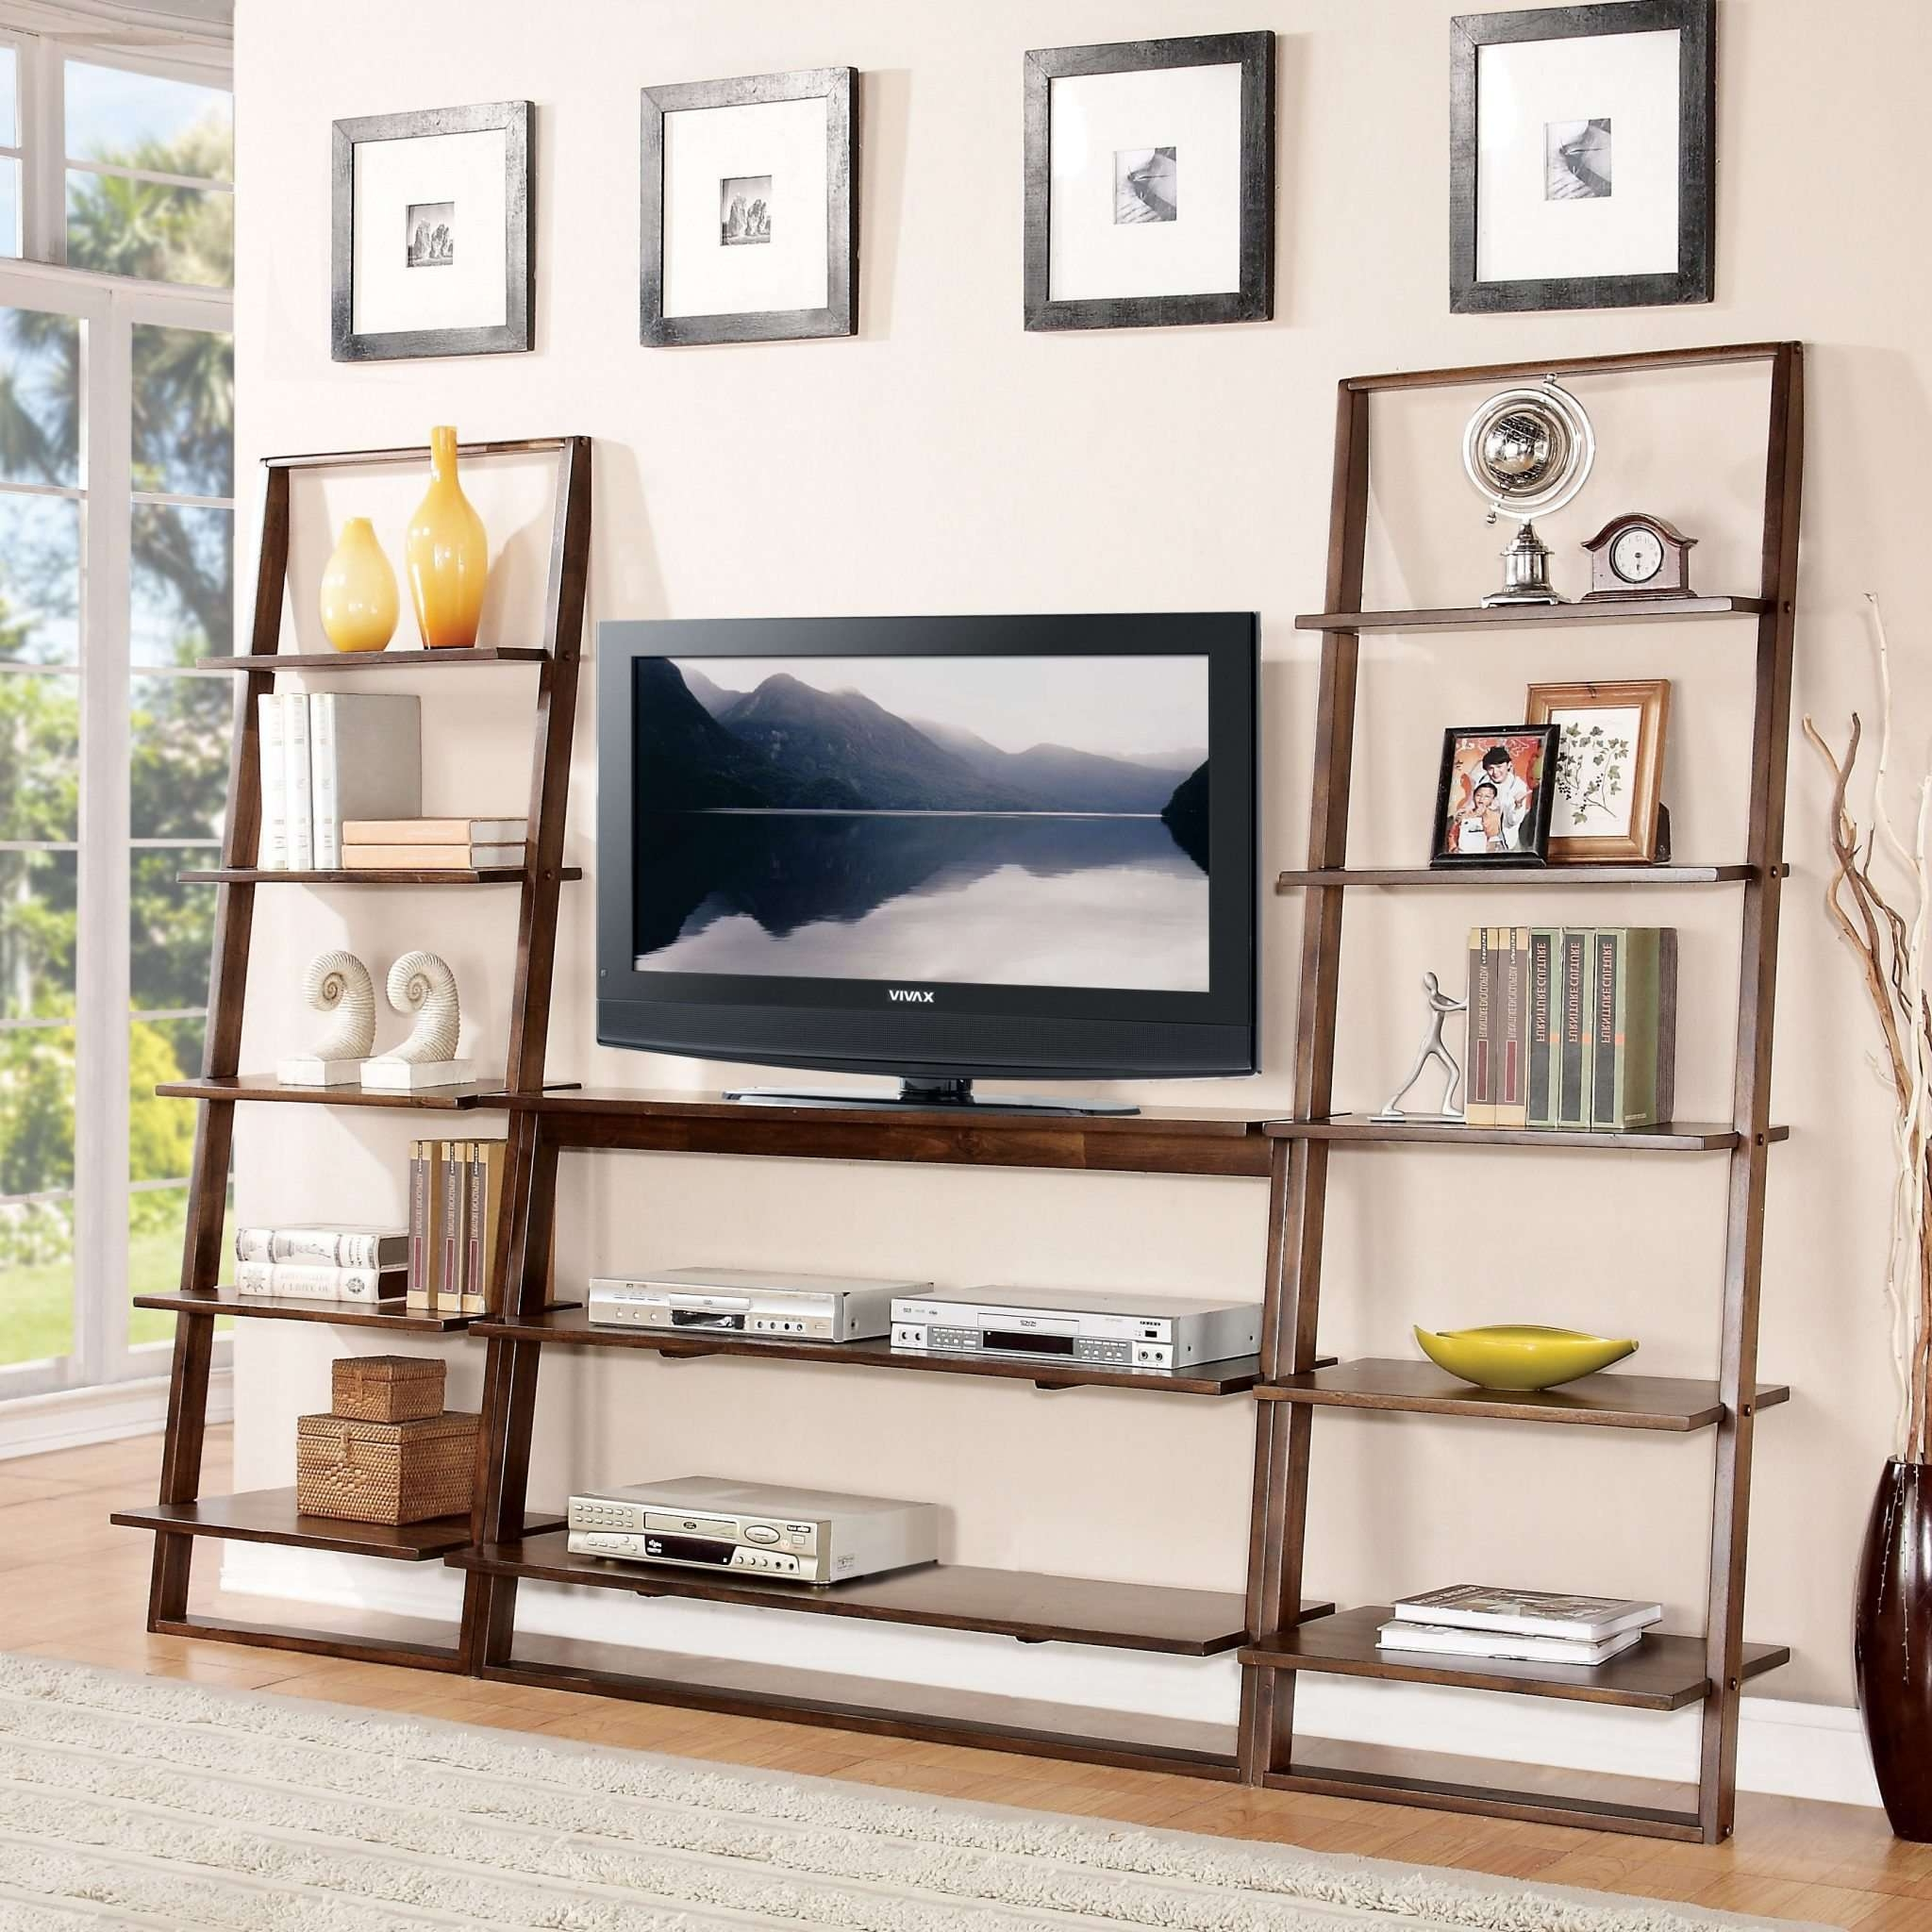 accent tv stand up most home for in with of bookcases current photos view displaying to furniture espresso attachment nash ameriwood storages gallery tvs bookcase